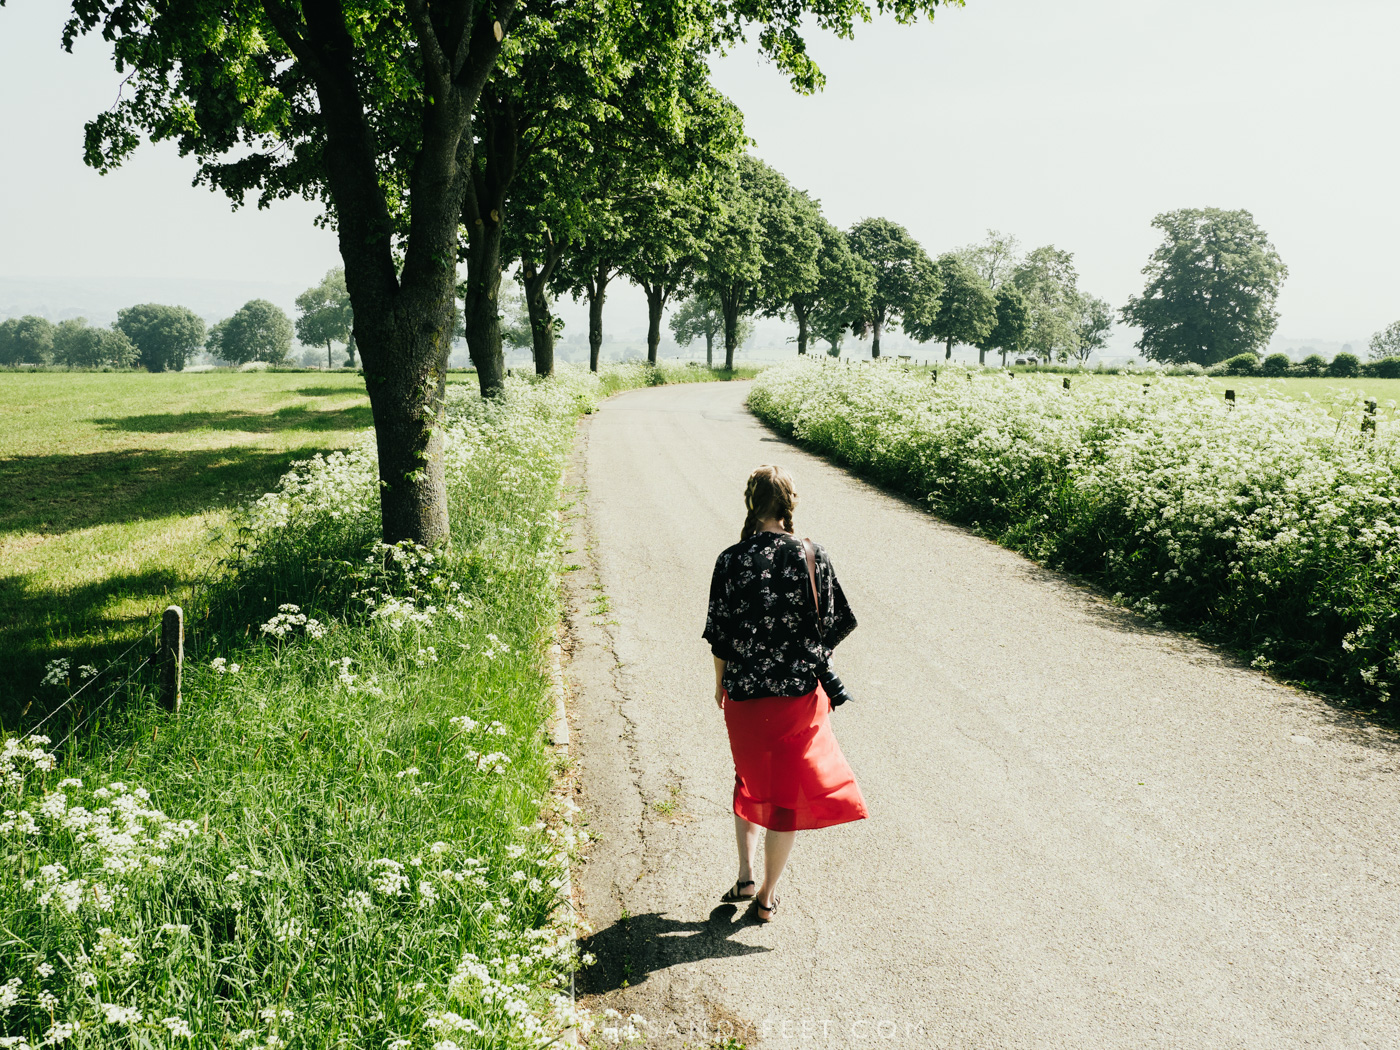 Exploring the Herve countryside | Top Things To Do In Belgium's Wallonia Region